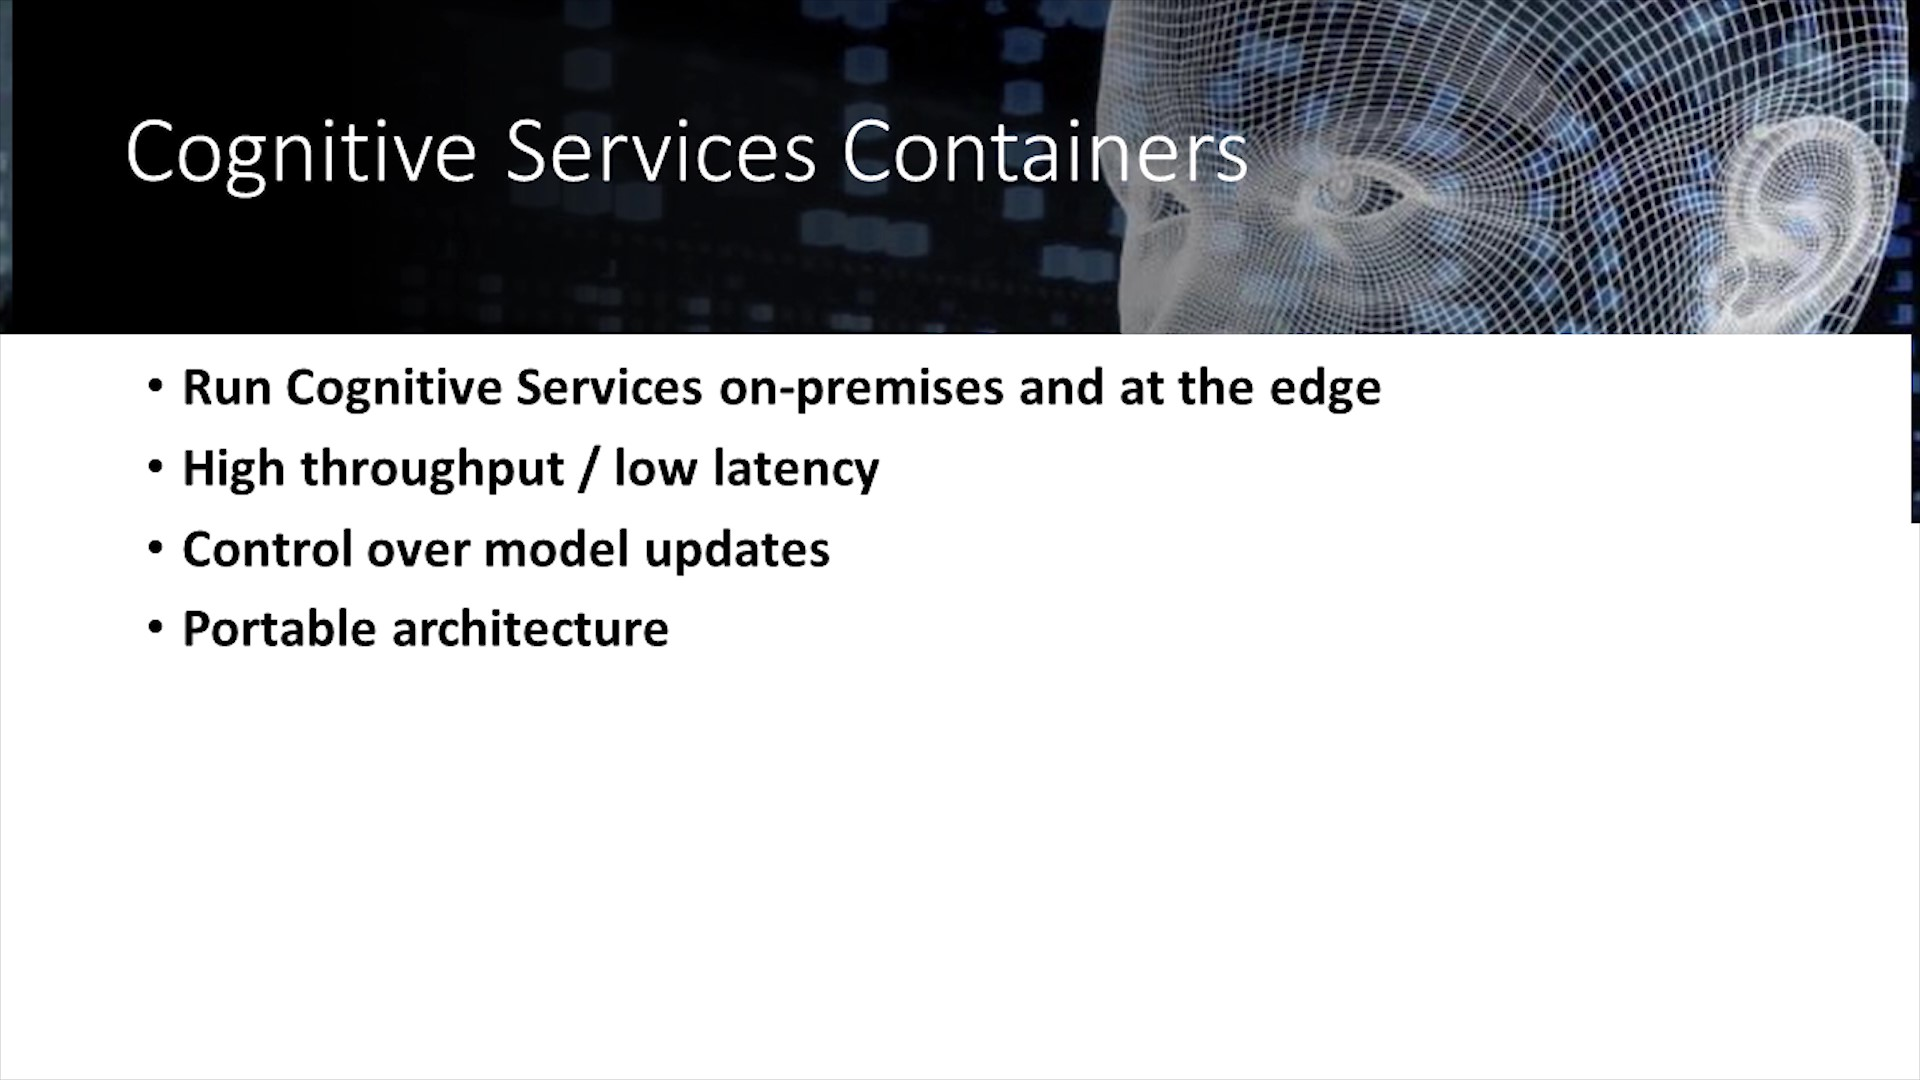 Containers Support of Cognitive Services